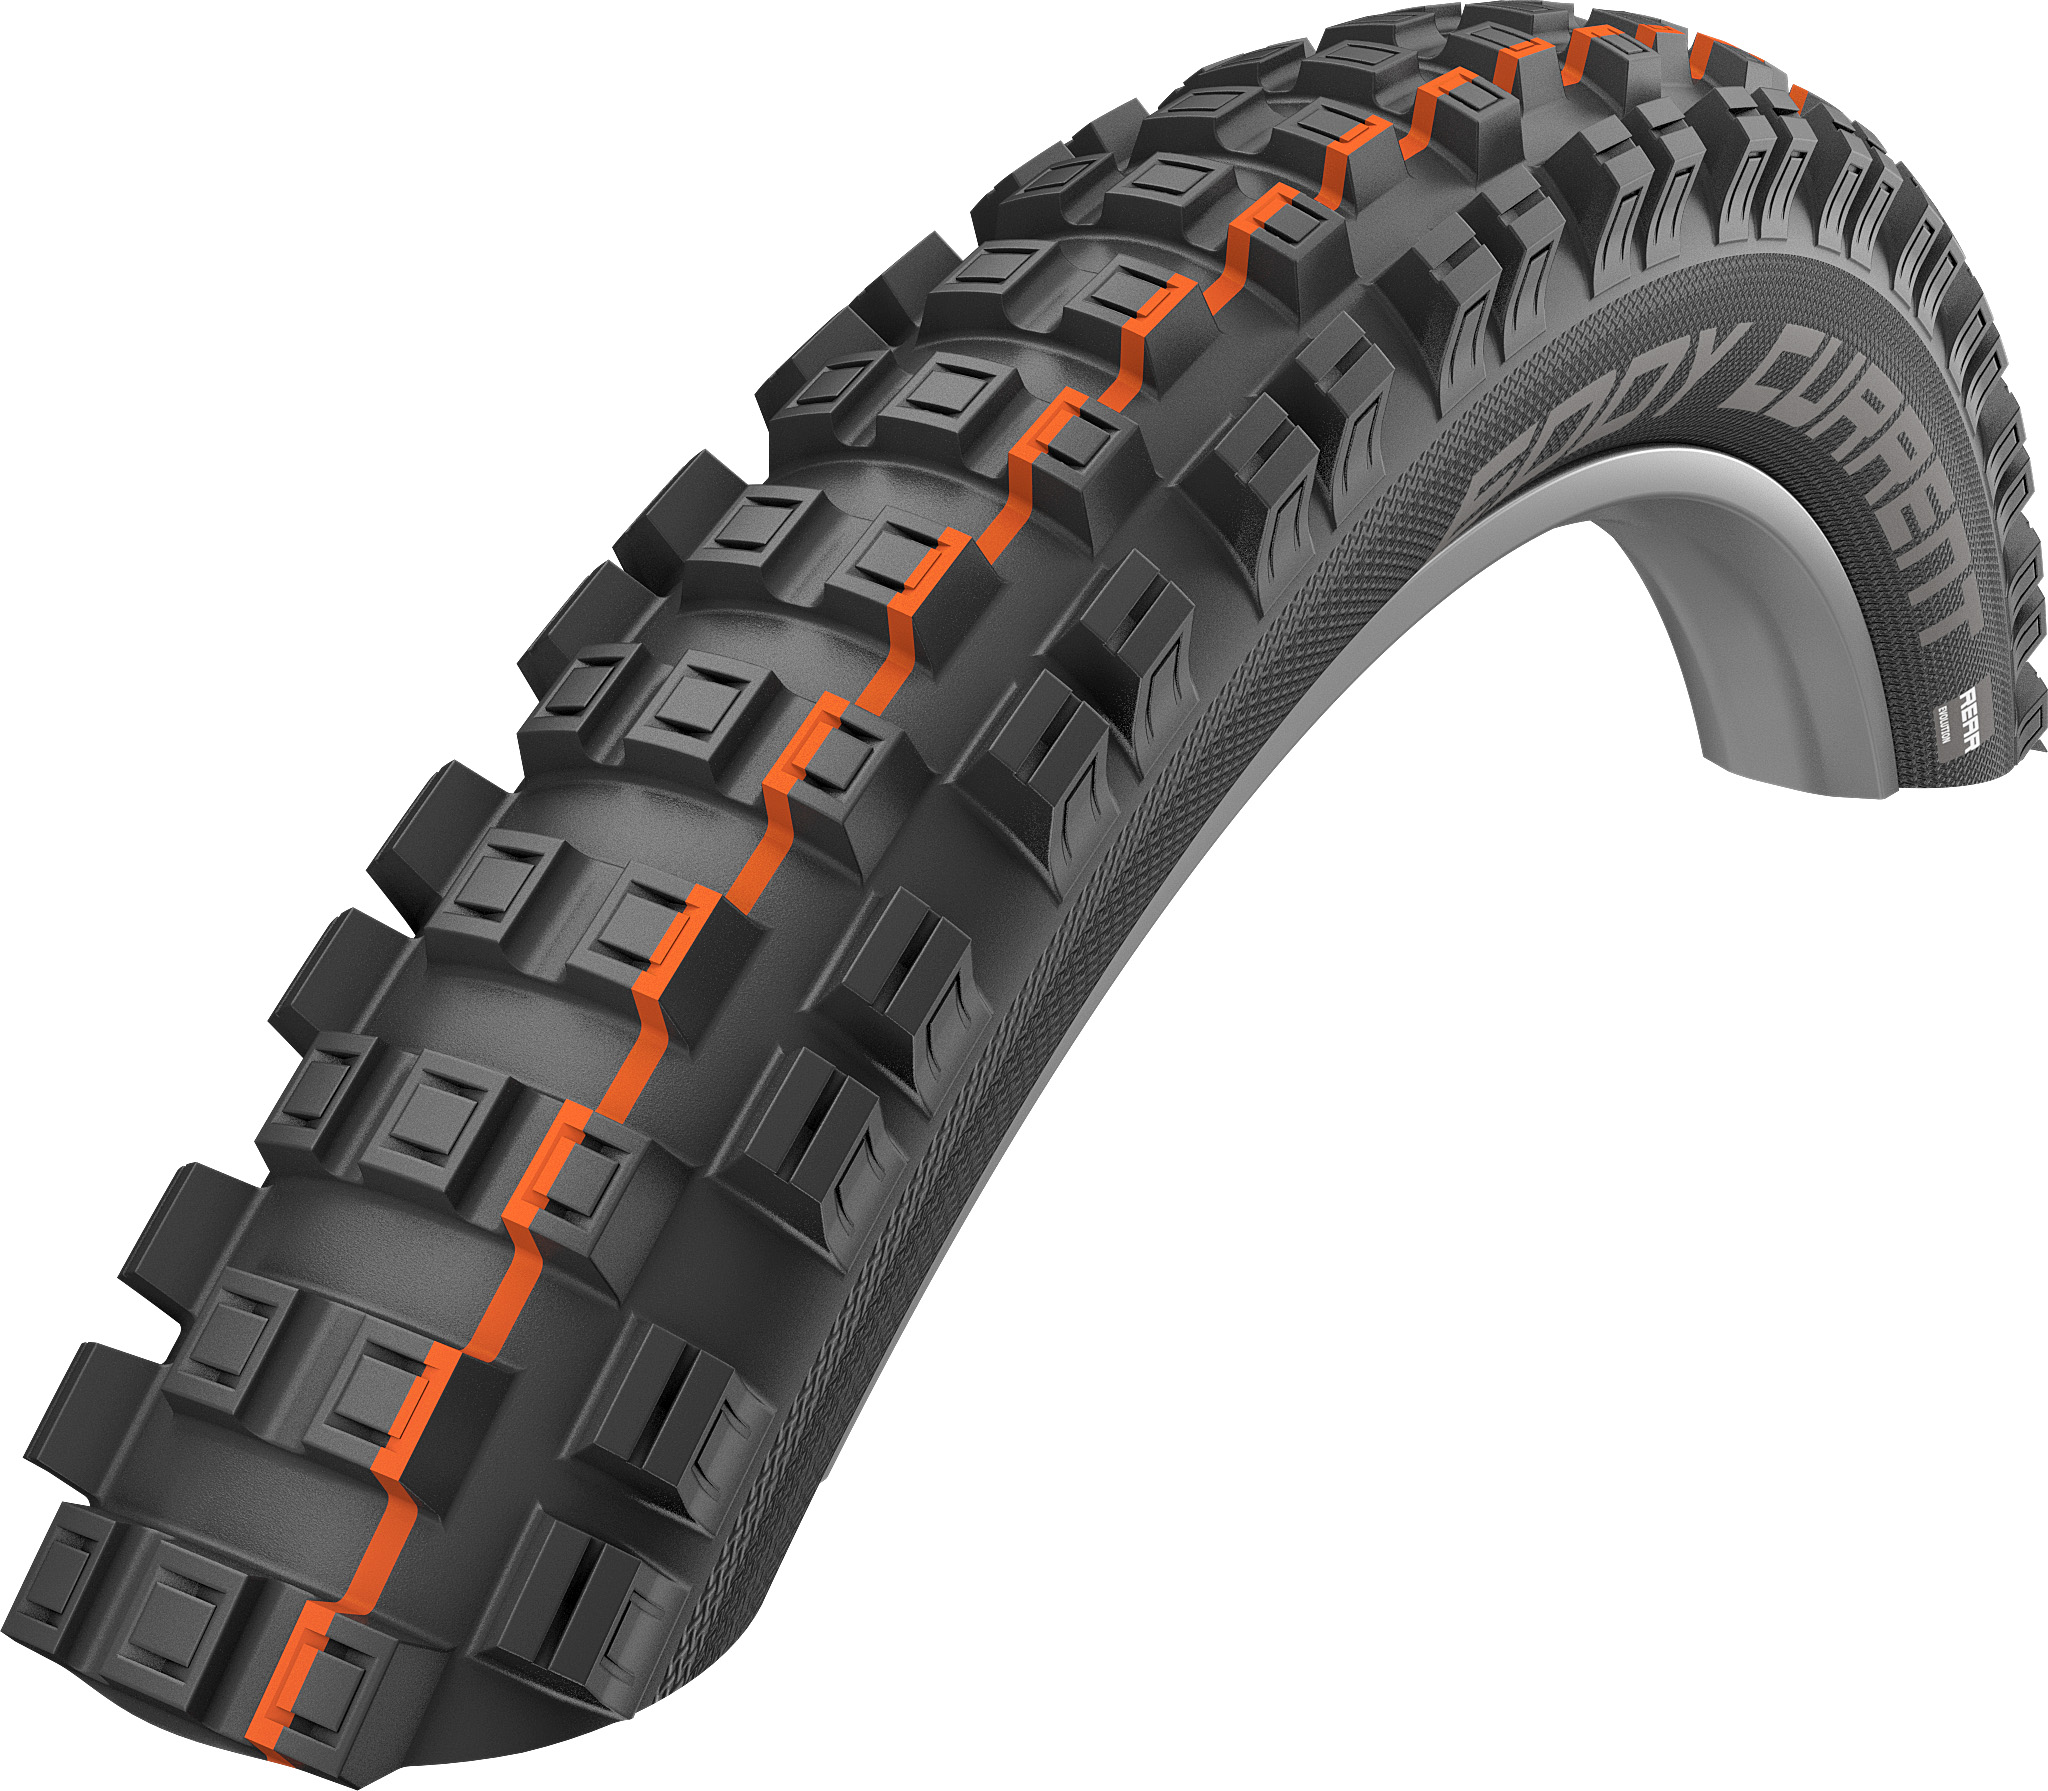 Schwalbe Eddy Current Rear Tyre - Super Gravity SnakeSkin | Tyres